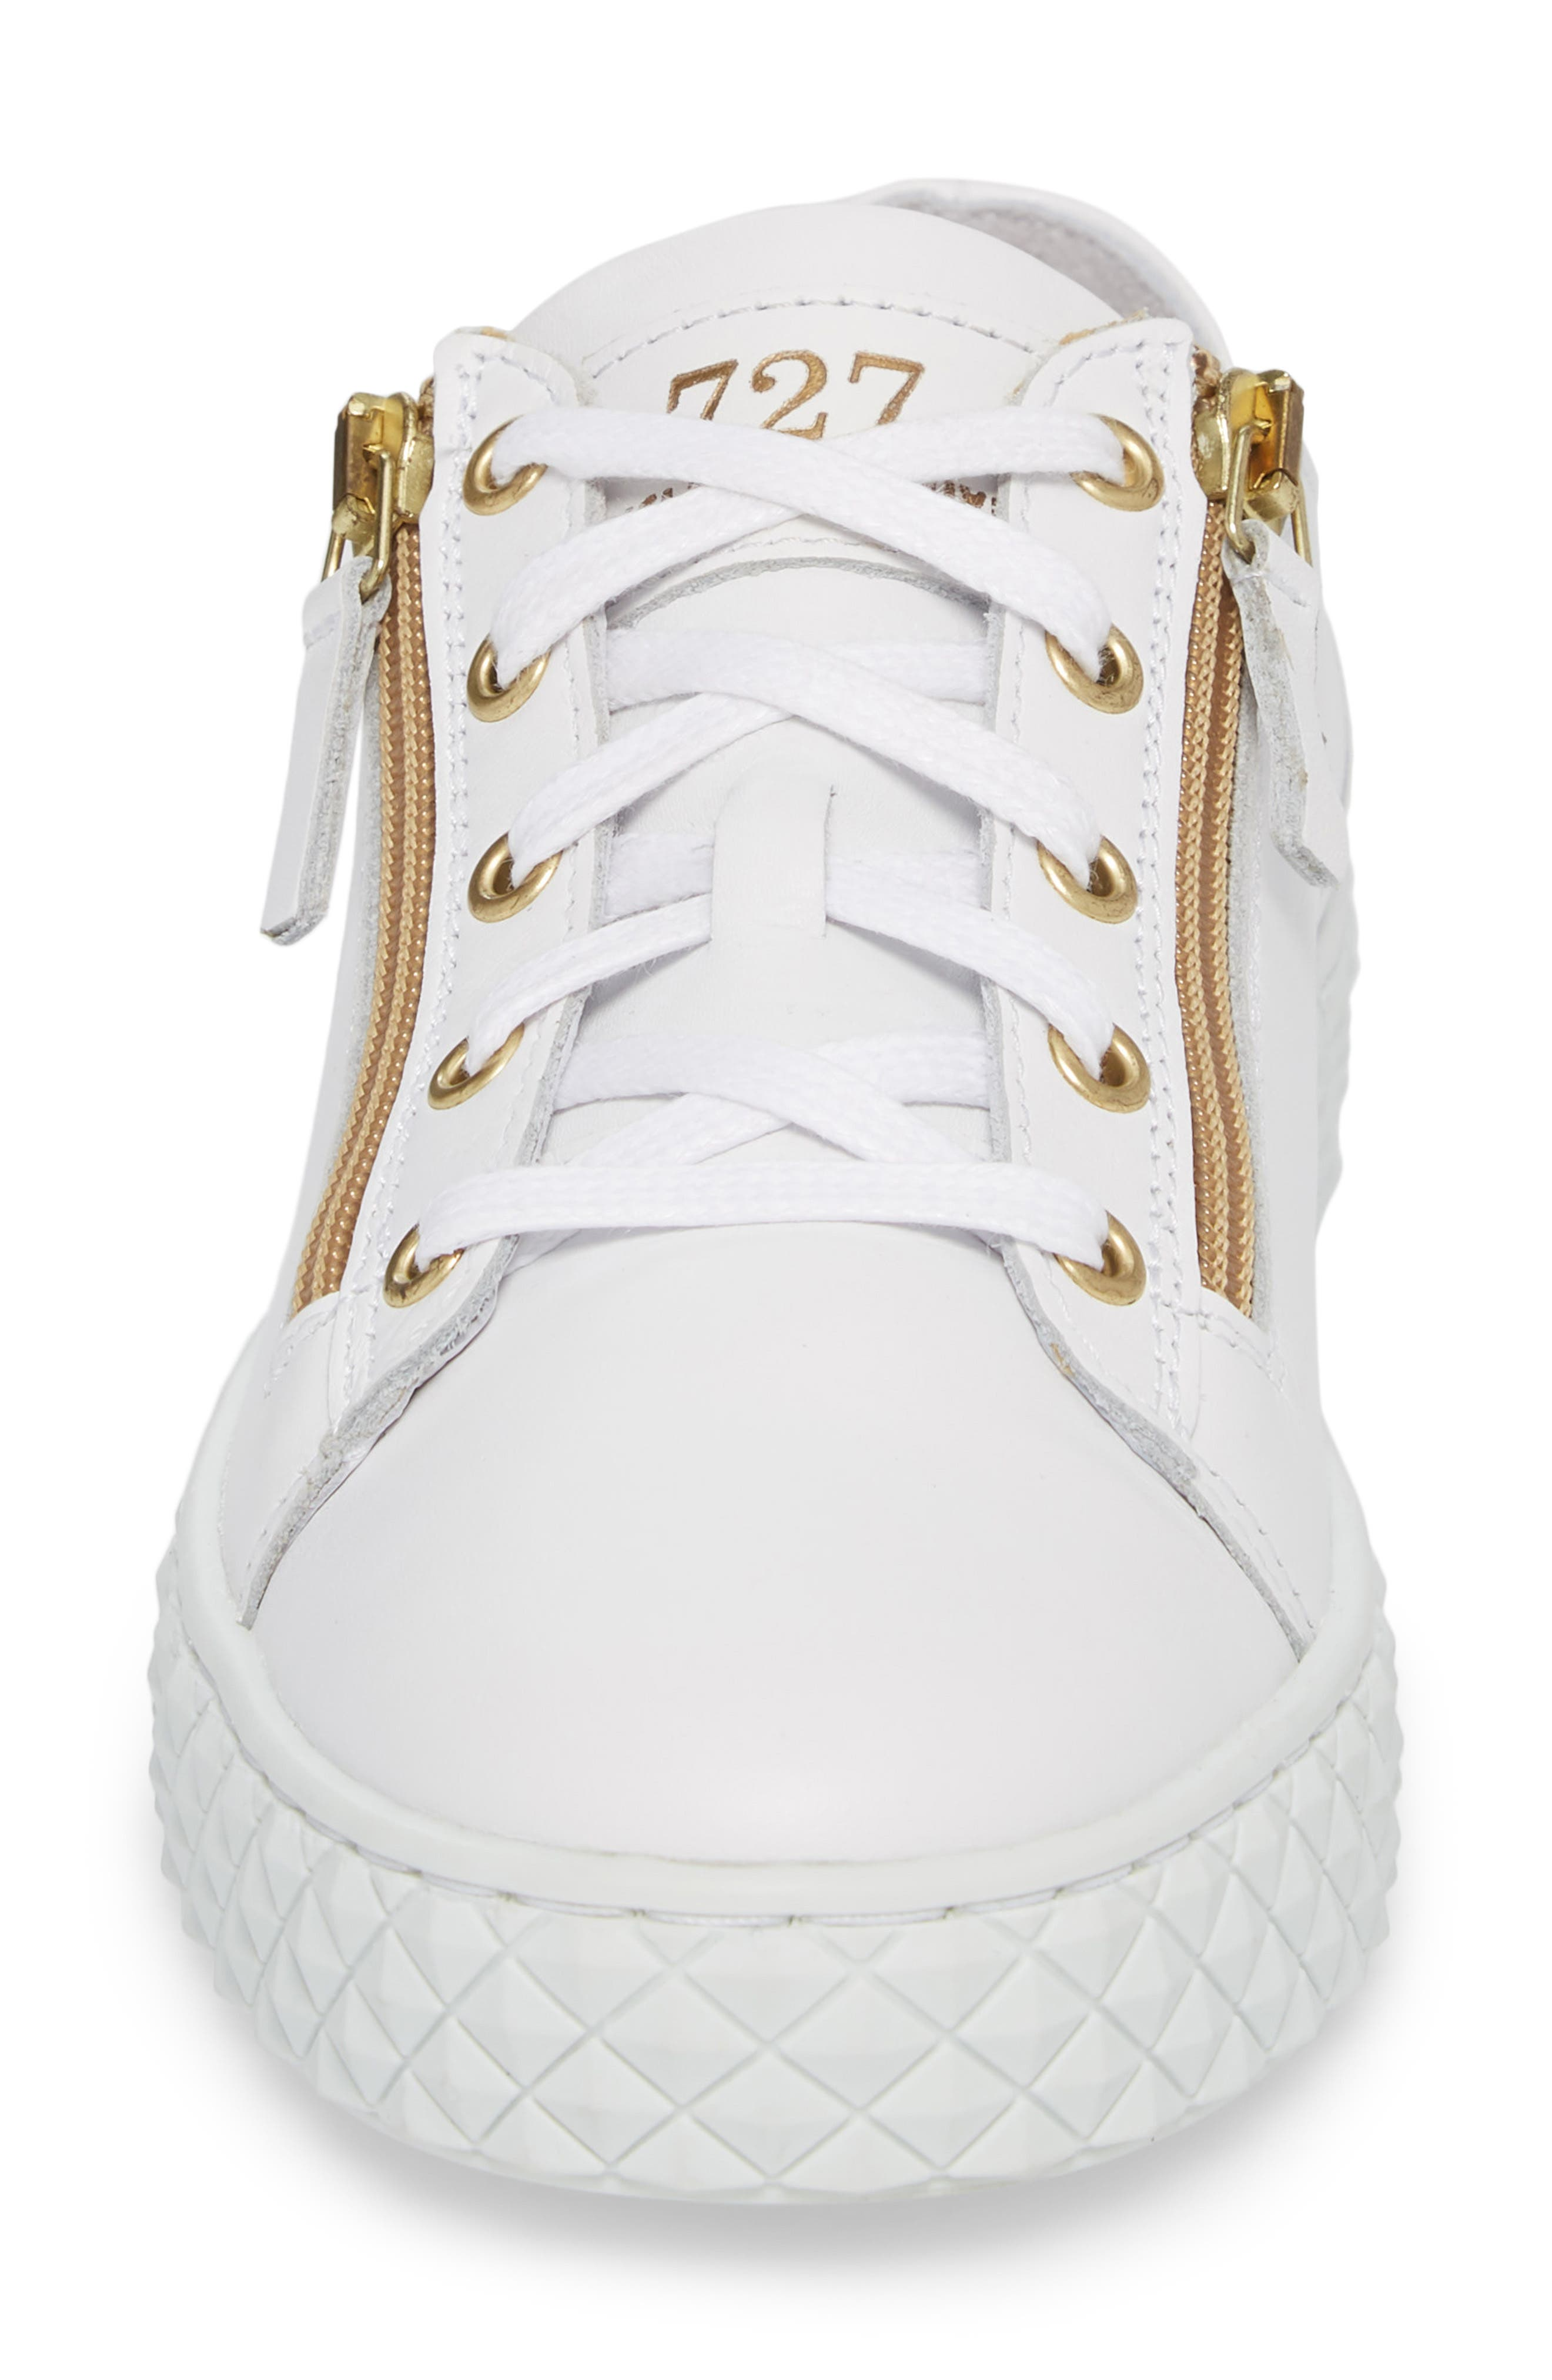 Mira Side Zip Low Top Sneaker,                             Alternate thumbnail 4, color,                             Optic White/ Gold Leather